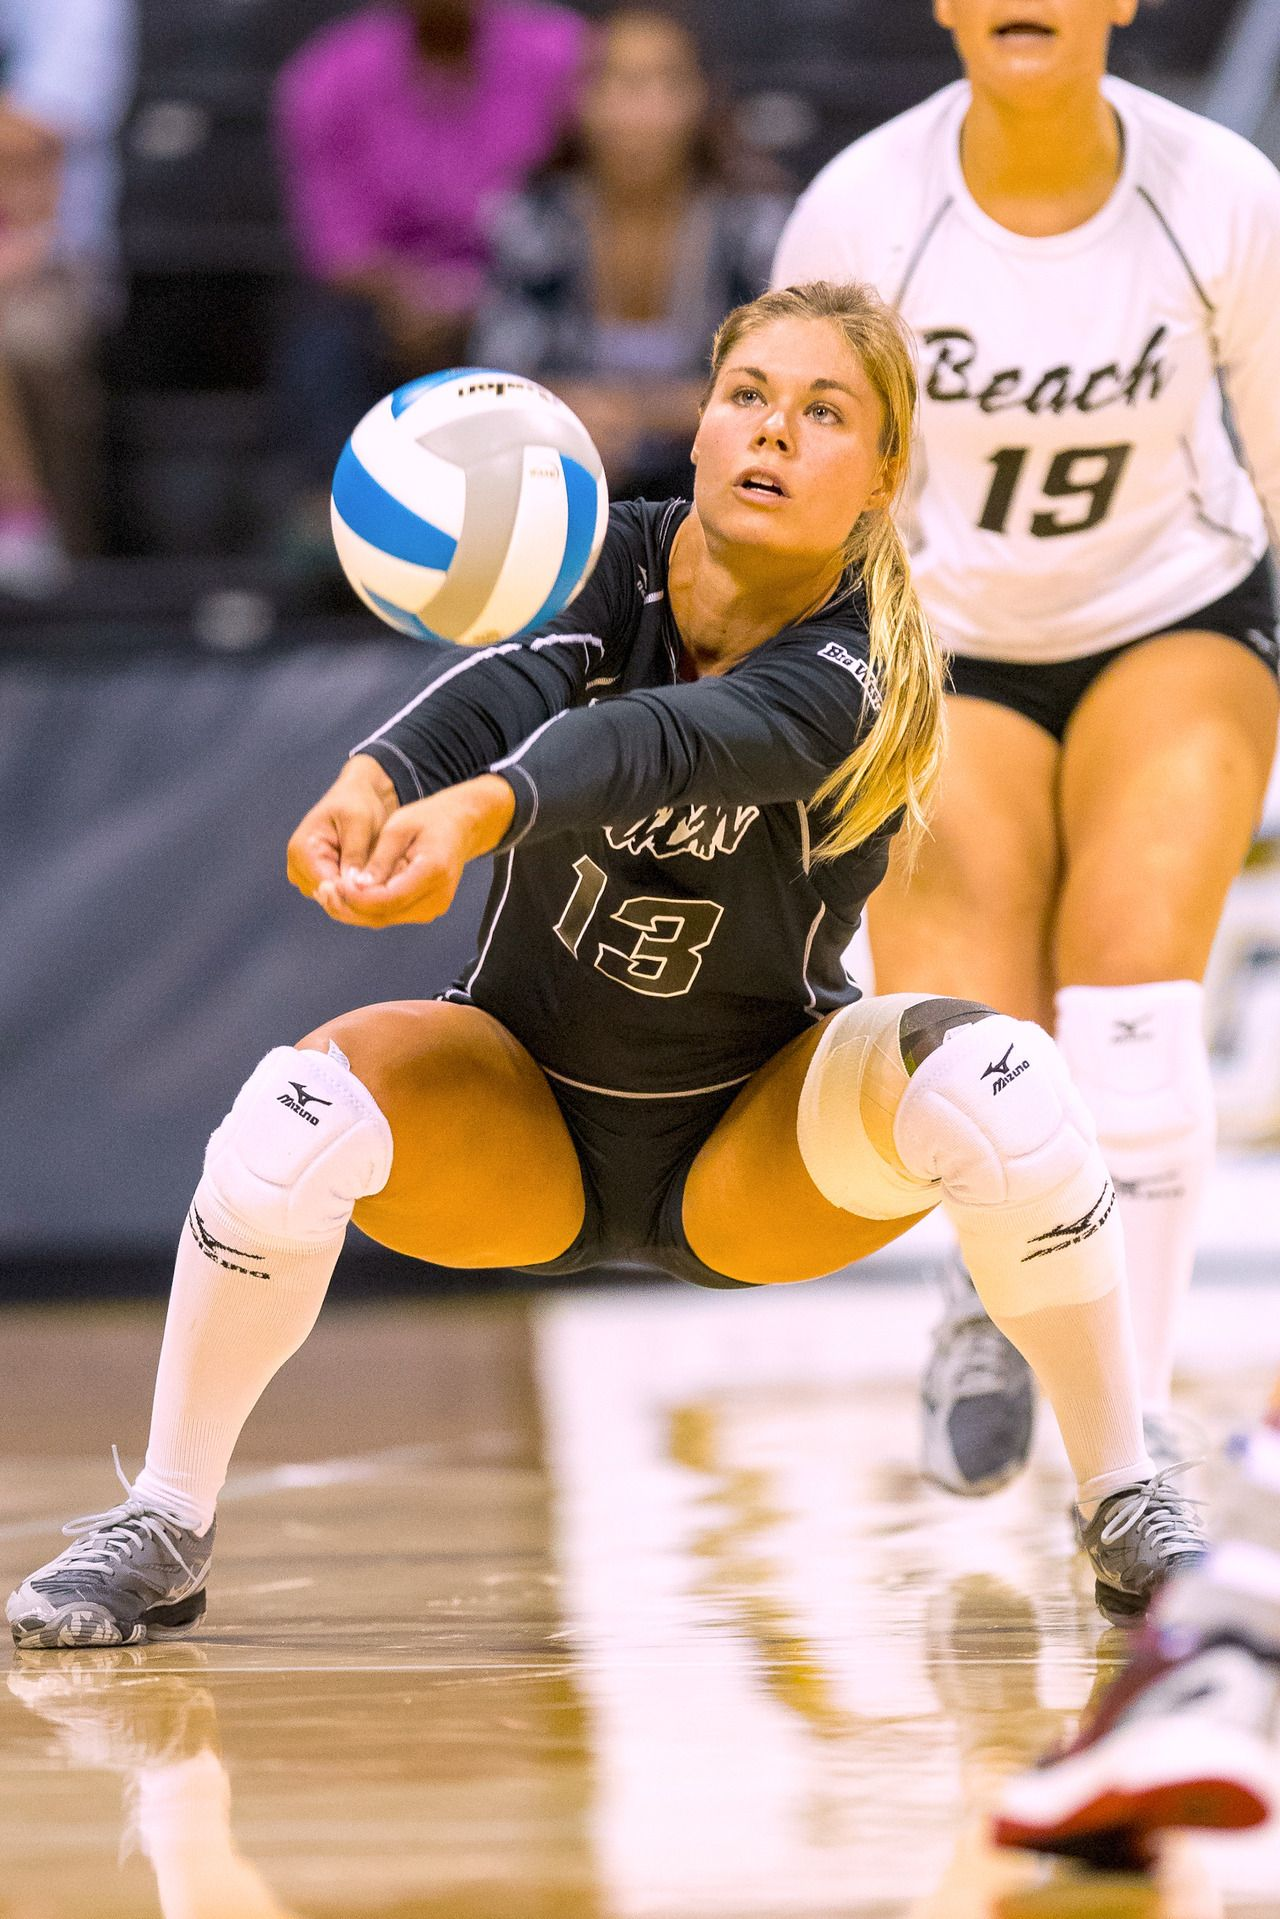 Pin By Dusty On Volleyball Volleyball Players Female Volleyball Players Volleyball